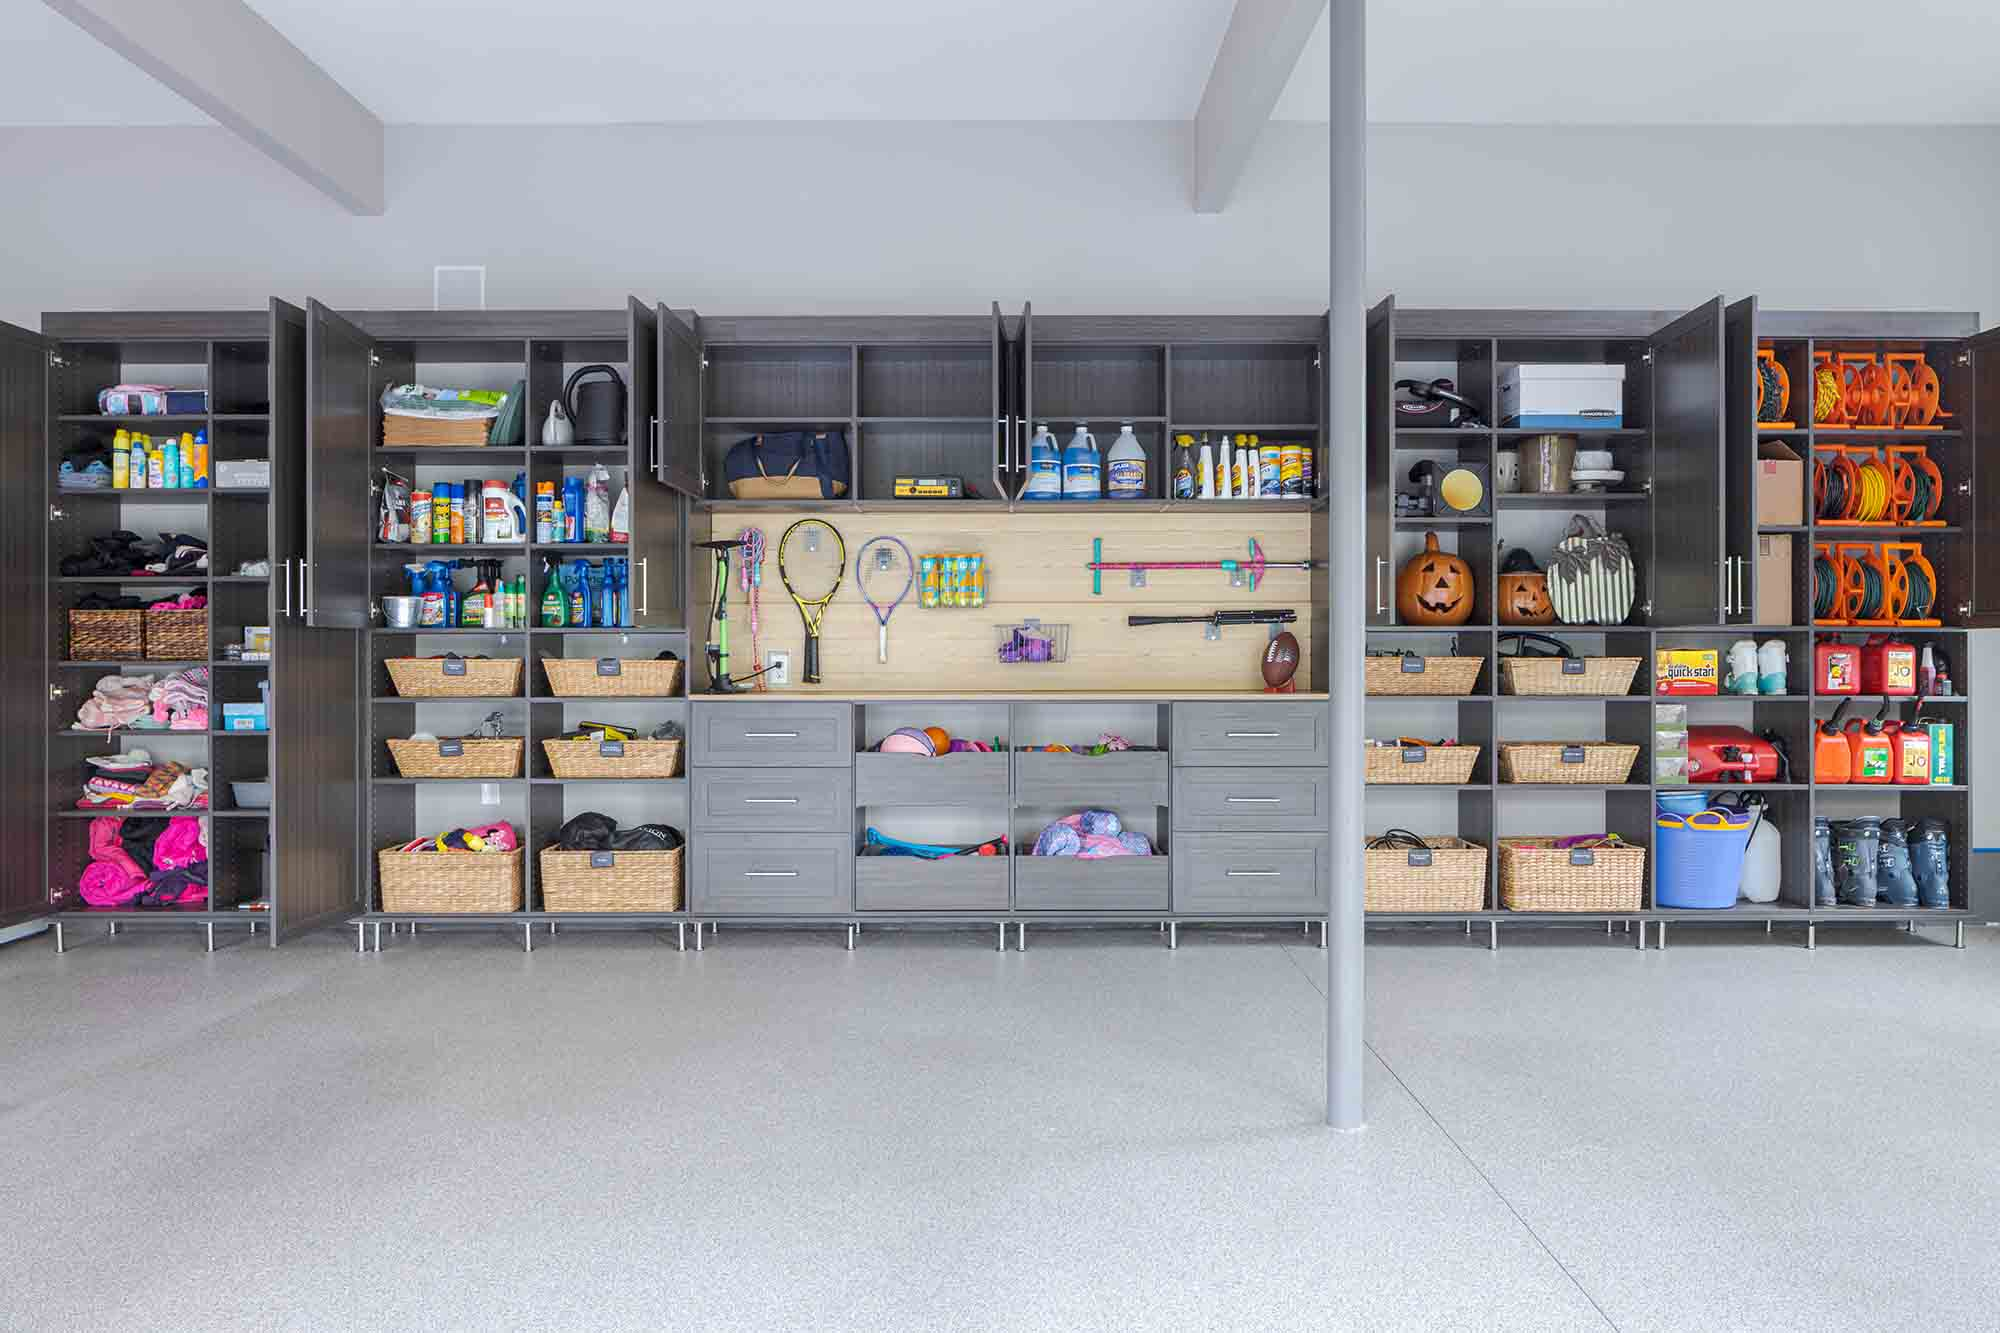 What Are the Biggest Design Trends for Garages in 2021?